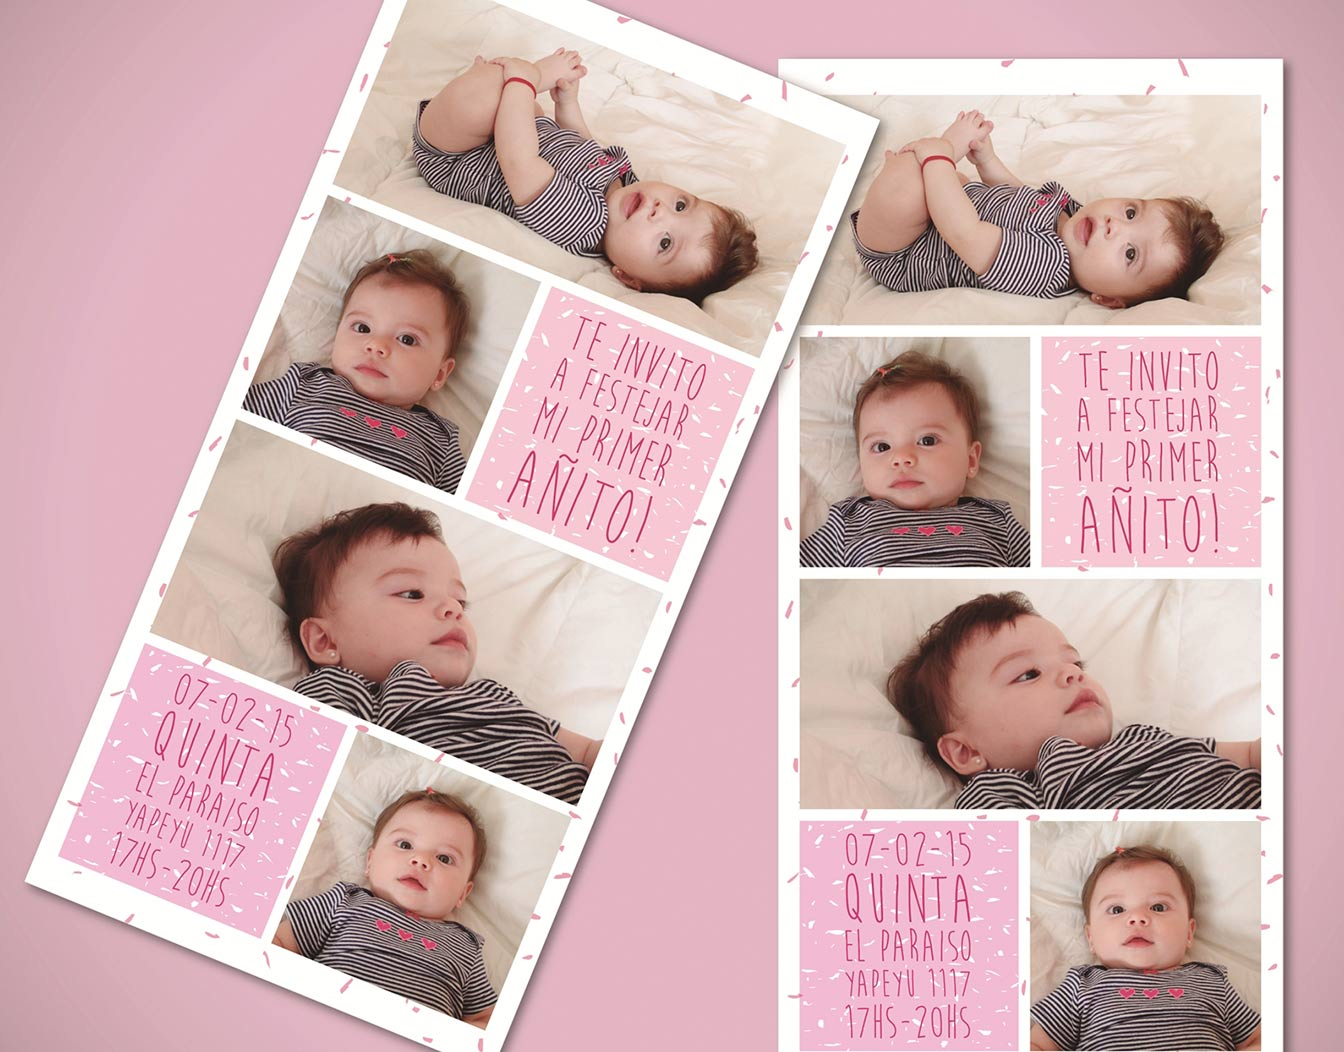 Birthday invitation card with baby passport photos